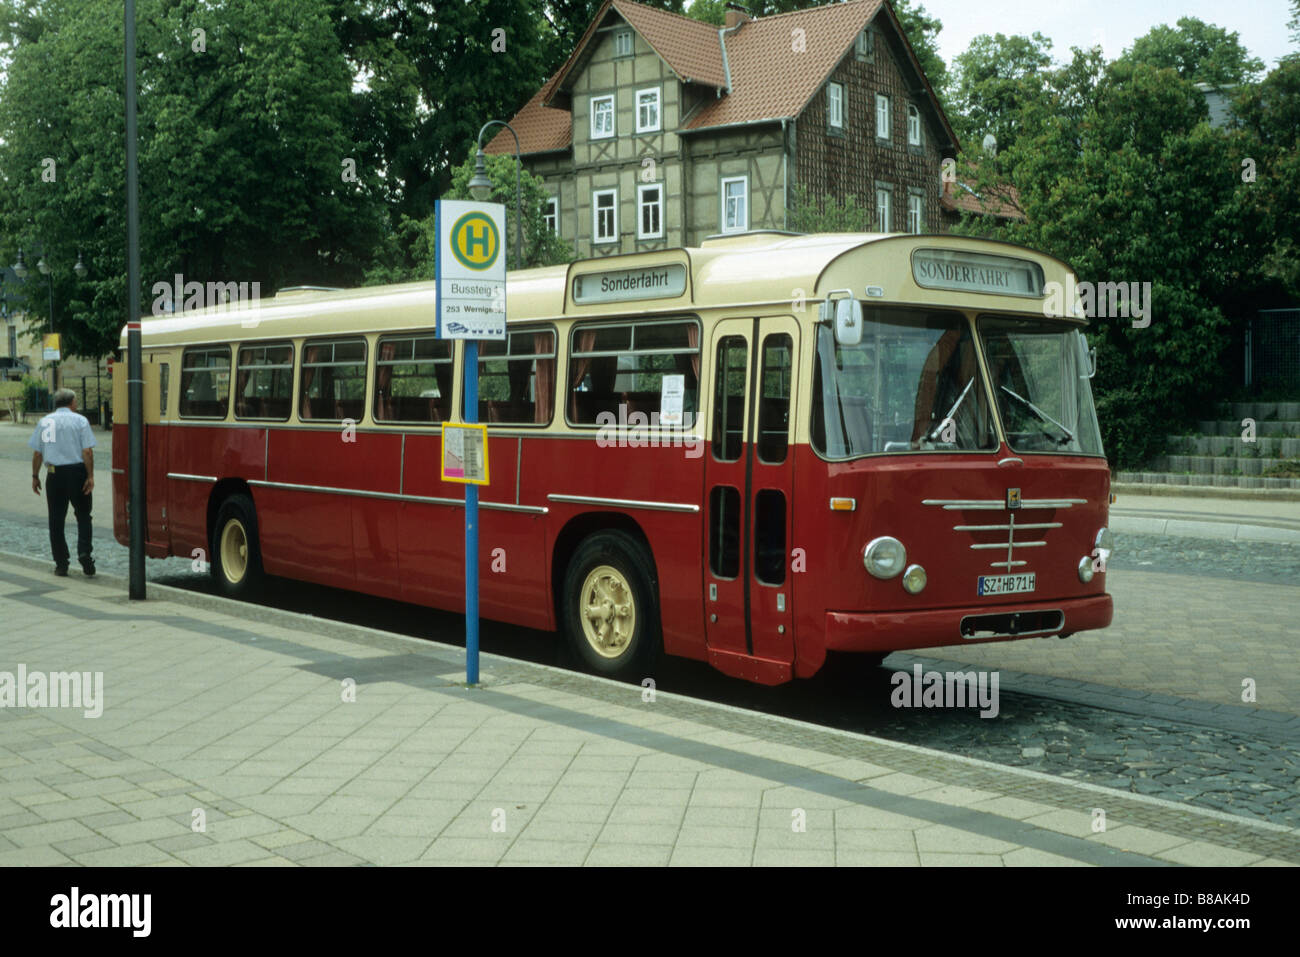 Bus Berlin Braunschweig Buessing Stock Photos Buessing Stock Images Alamy